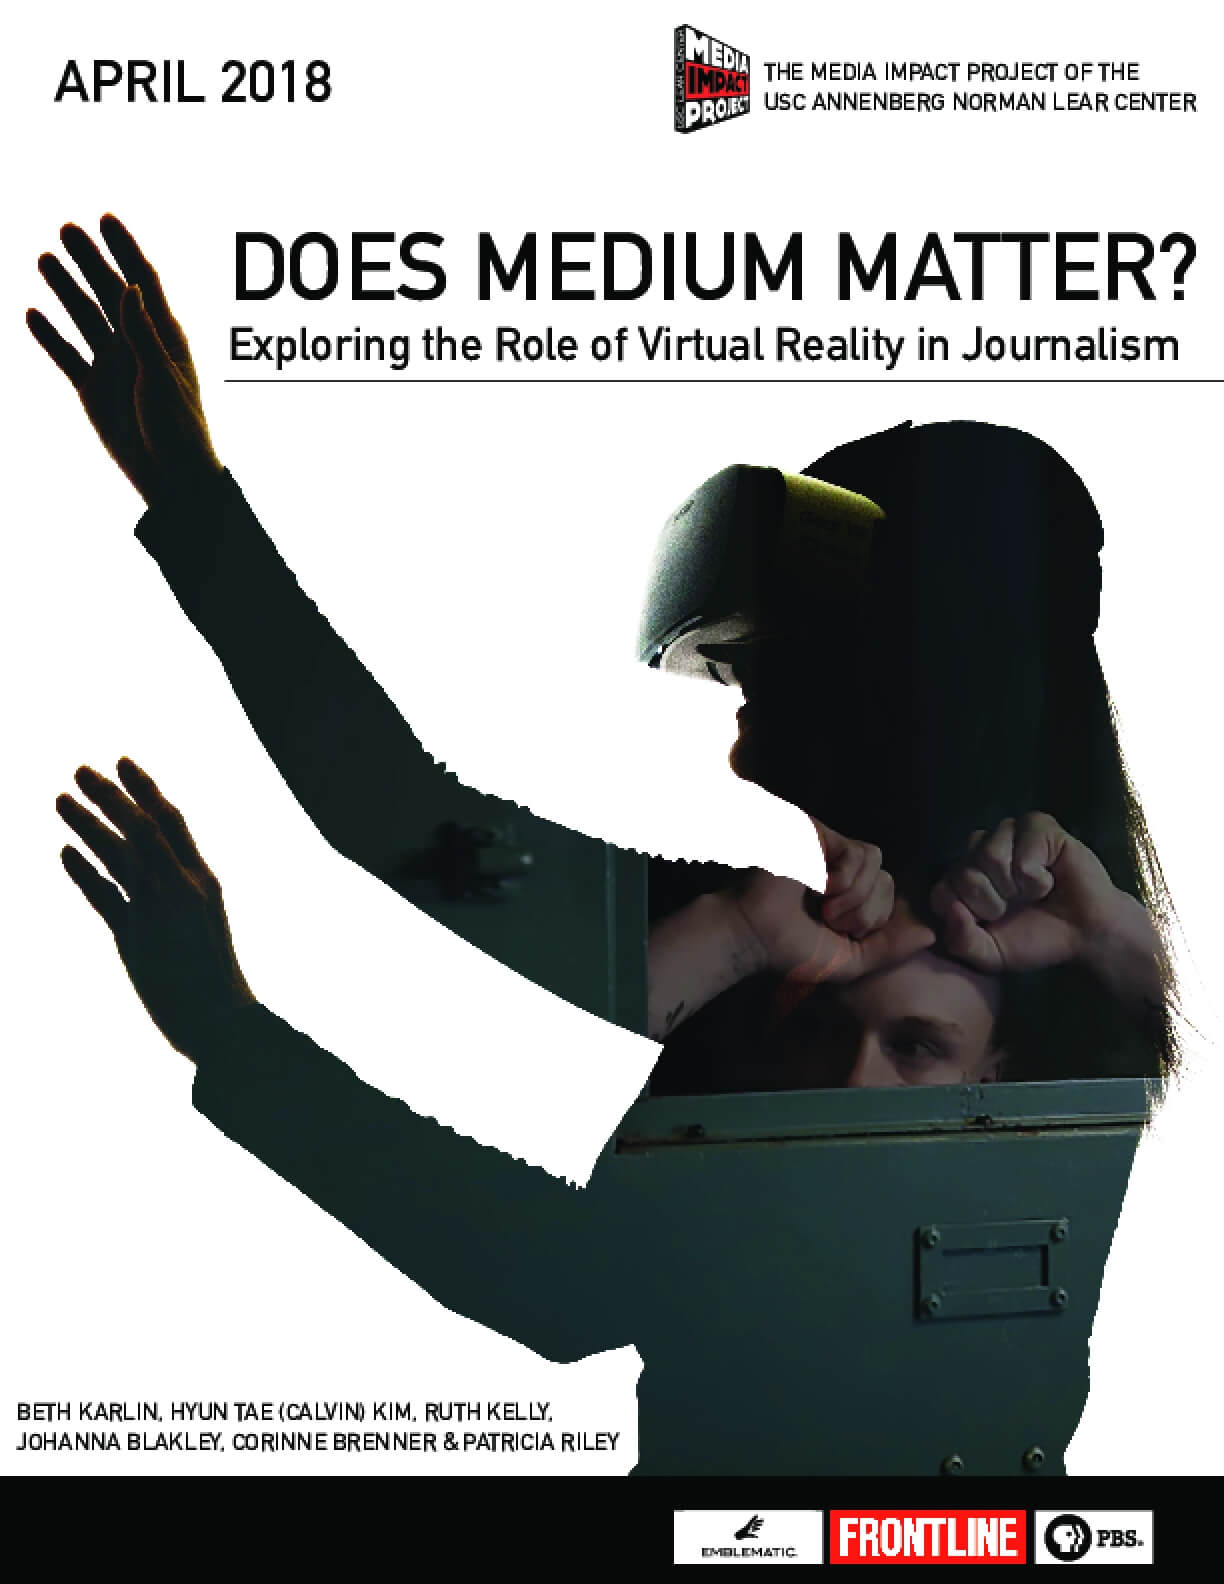 Does Medium Matter? Exploring the Role of Virtual Reality in Journalism